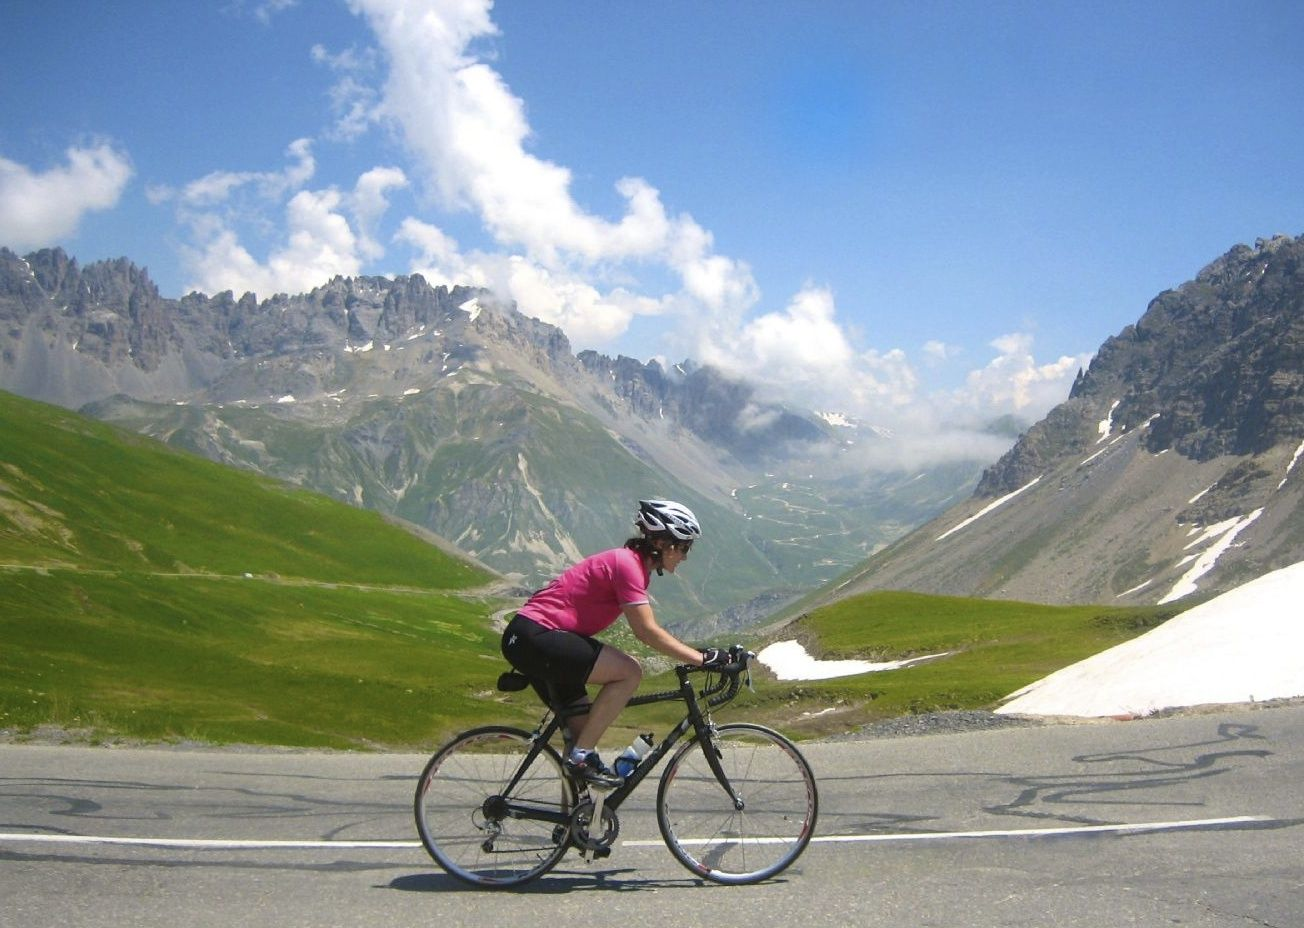 ALPINEINTRO.jpg - France - Classic Alps Passes - Alpine Introduction - Guided Road Cycling Holiday - Road Cycling